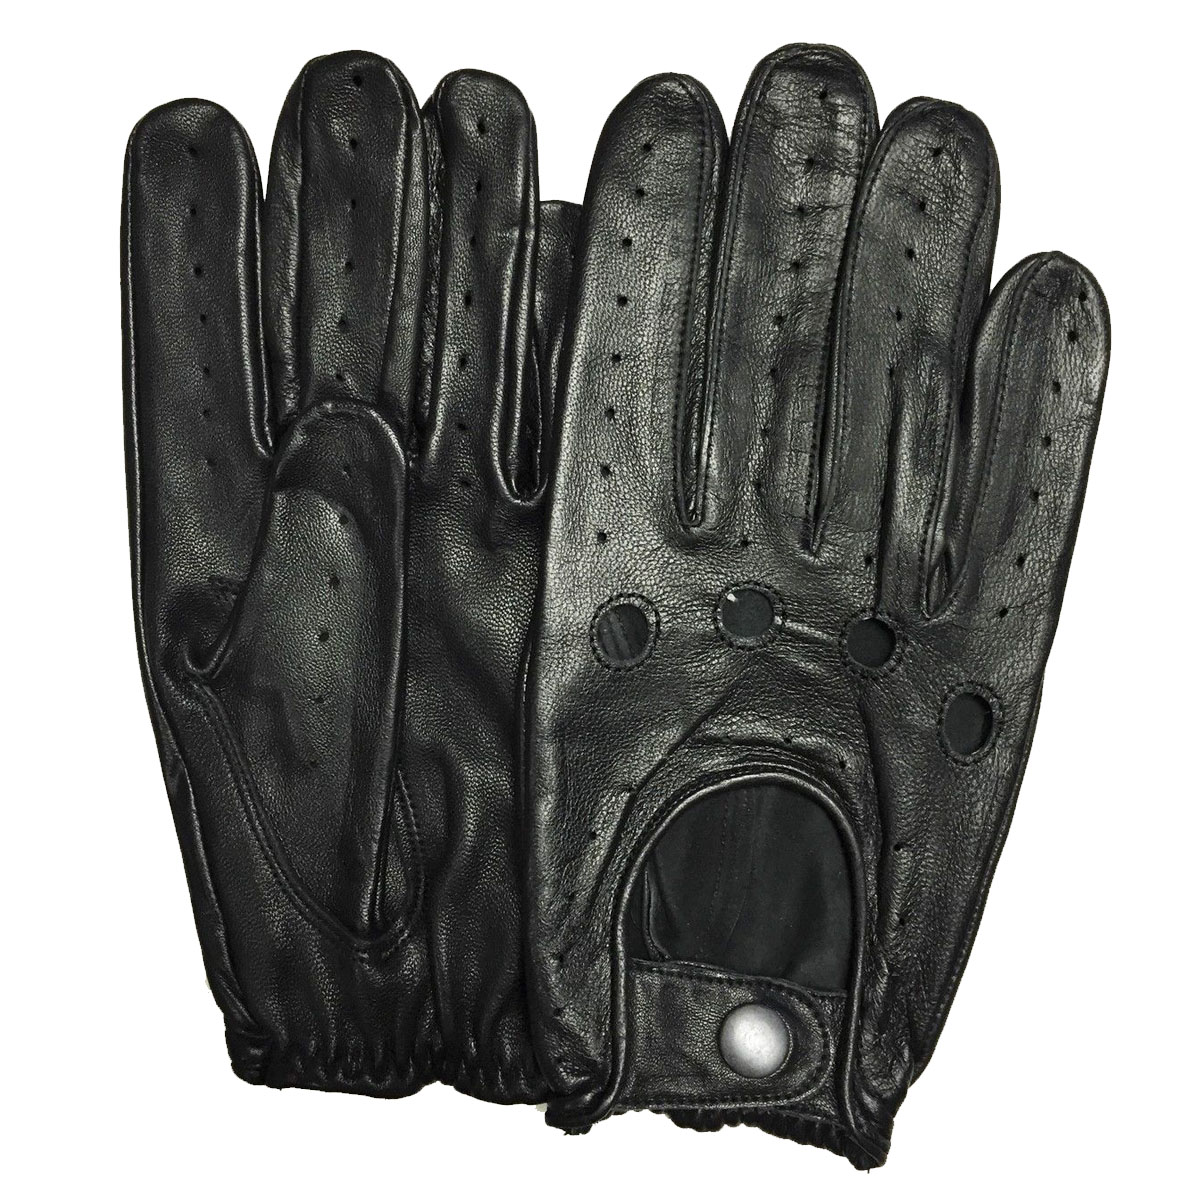 Dam Leather Weight Lifting Gym Gloves Real Leather Women S: RETRO UNISEX GENUINE LEATHER DRIVING GLOVES CHAUFFEUR